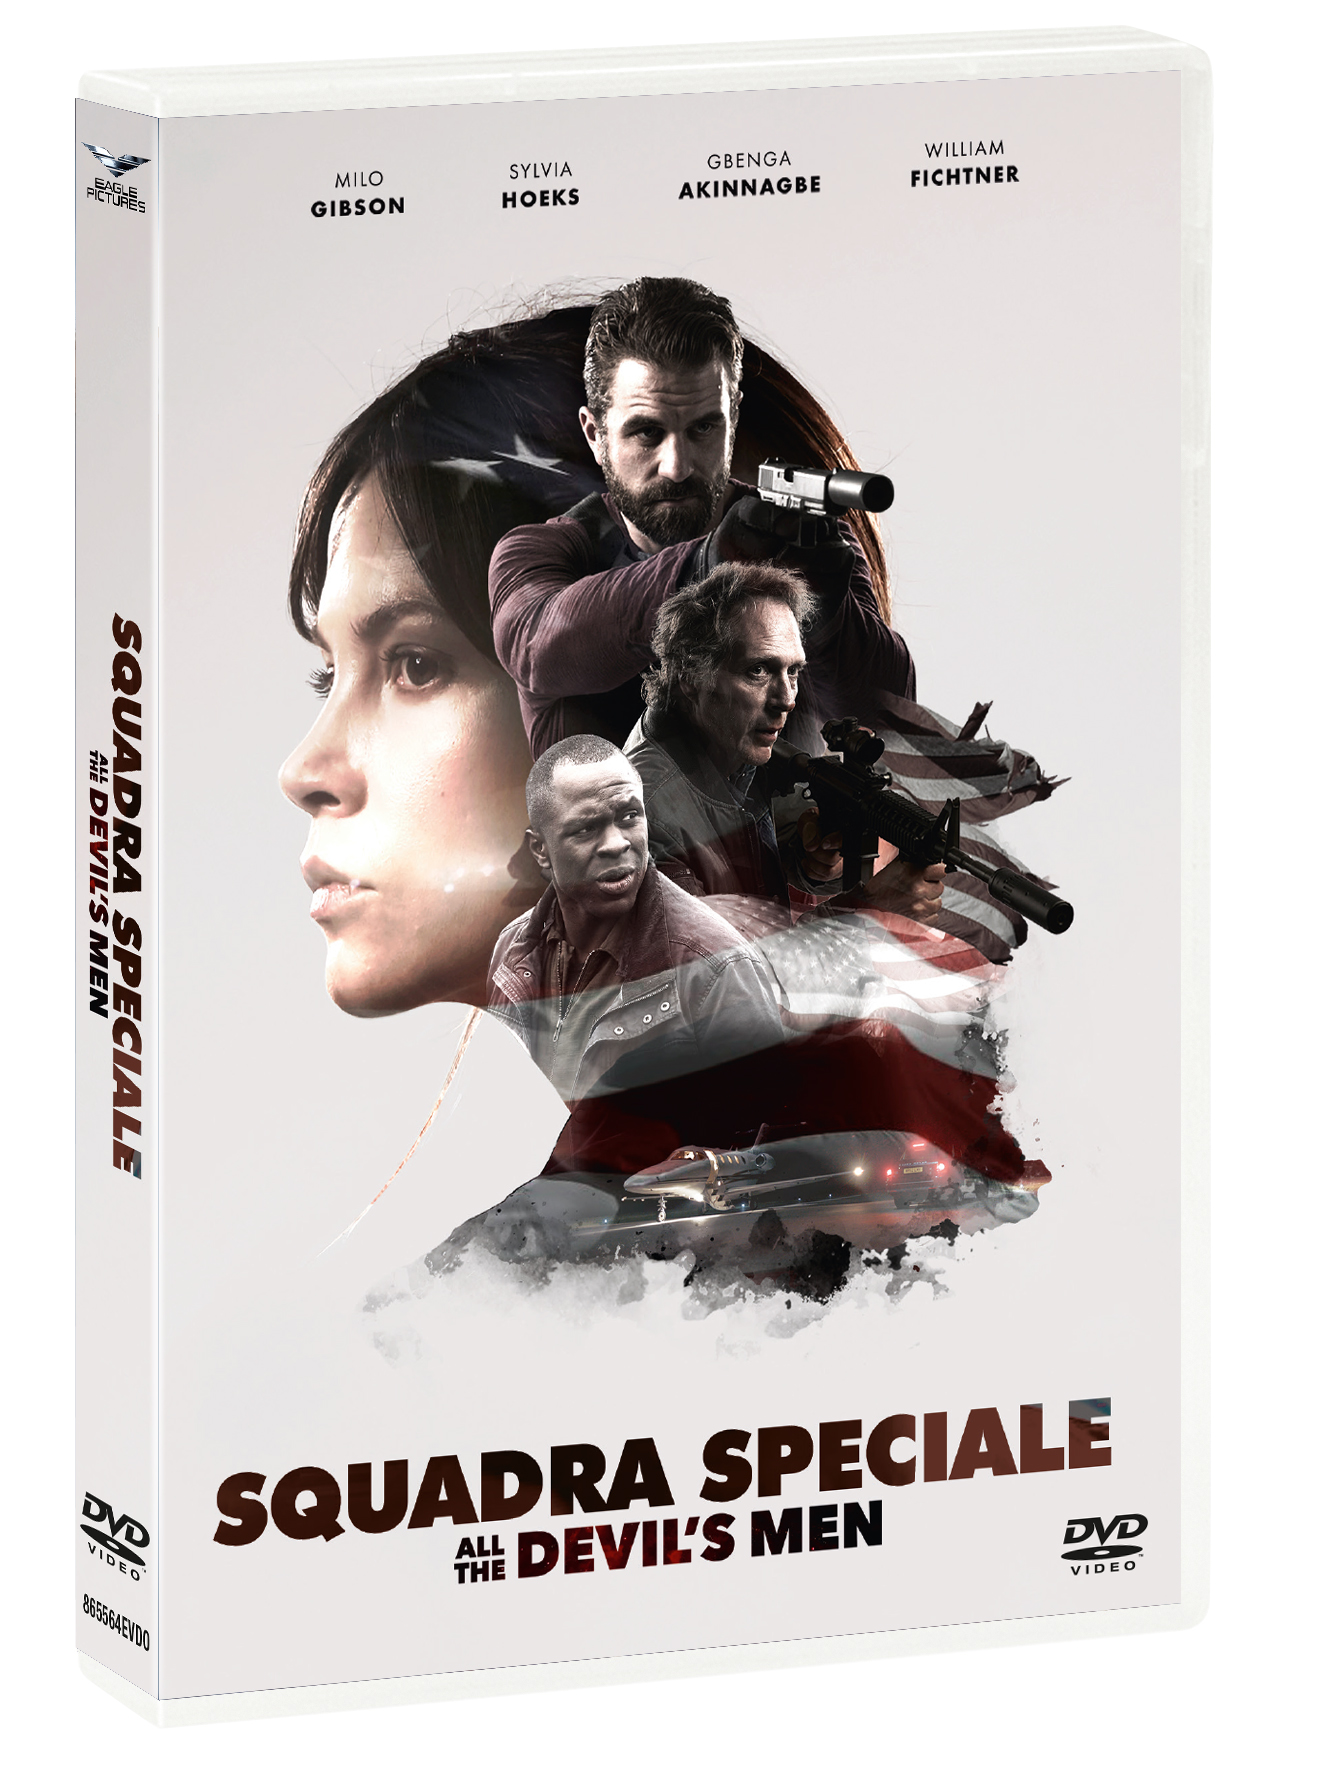 ALL THE DEVIL'S MEN - SQUADRA SPECIALE (DVD)